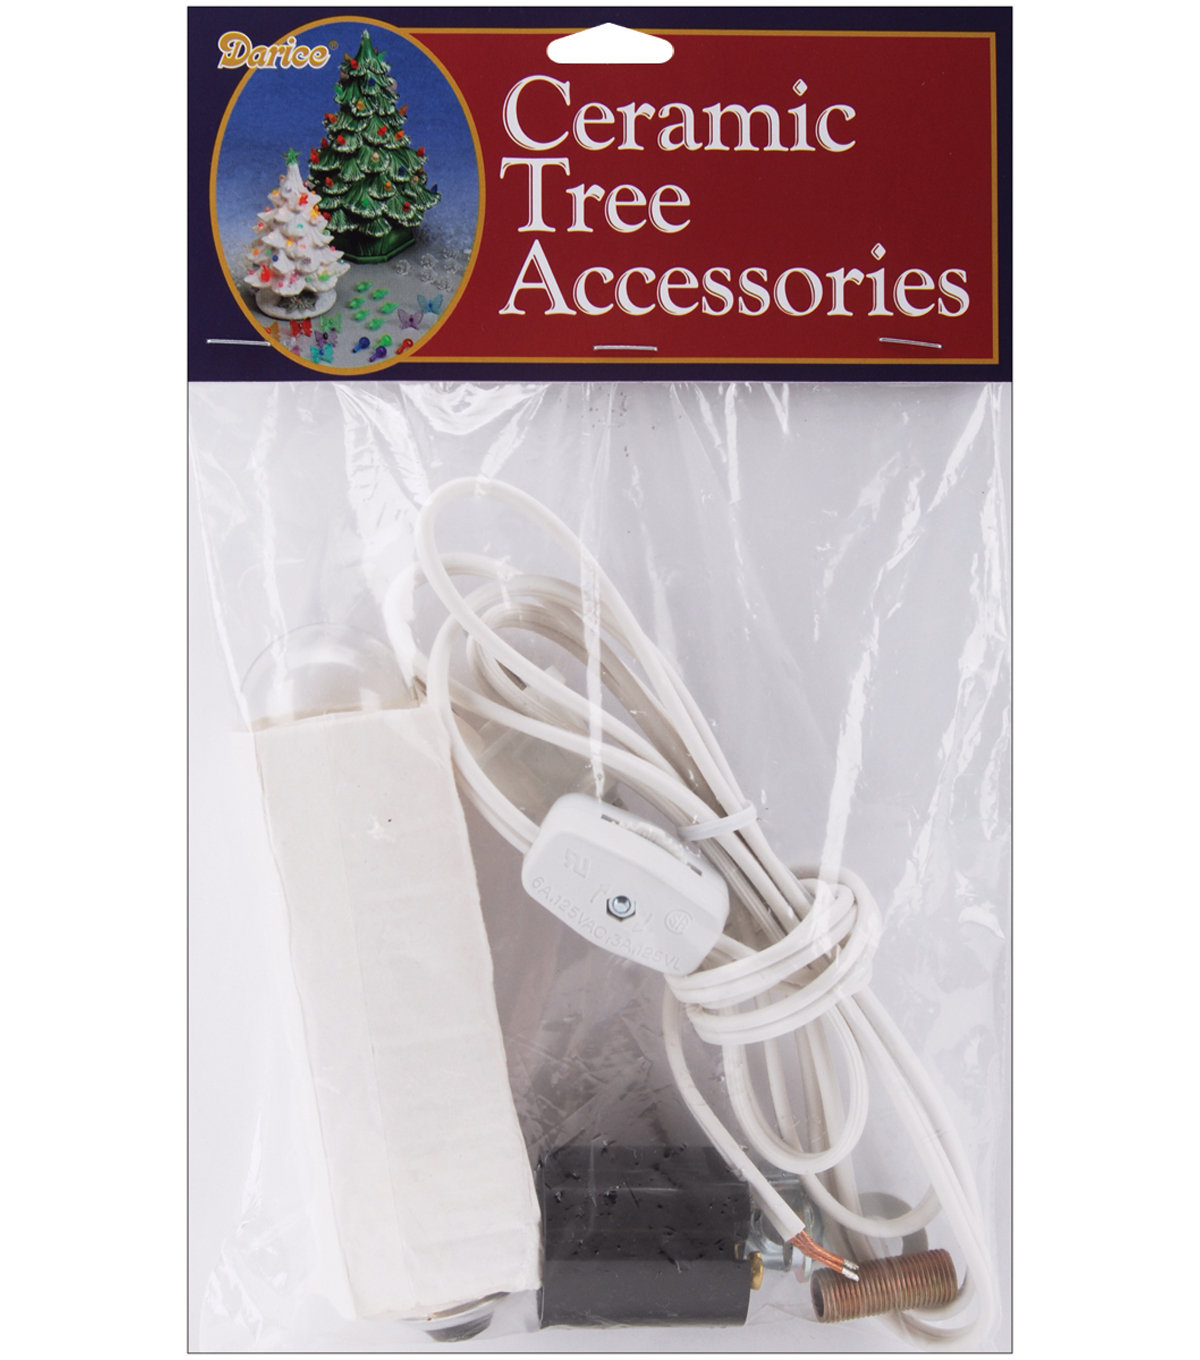 Darice Christmas Ceramic Tree Accessory Lamp Kit